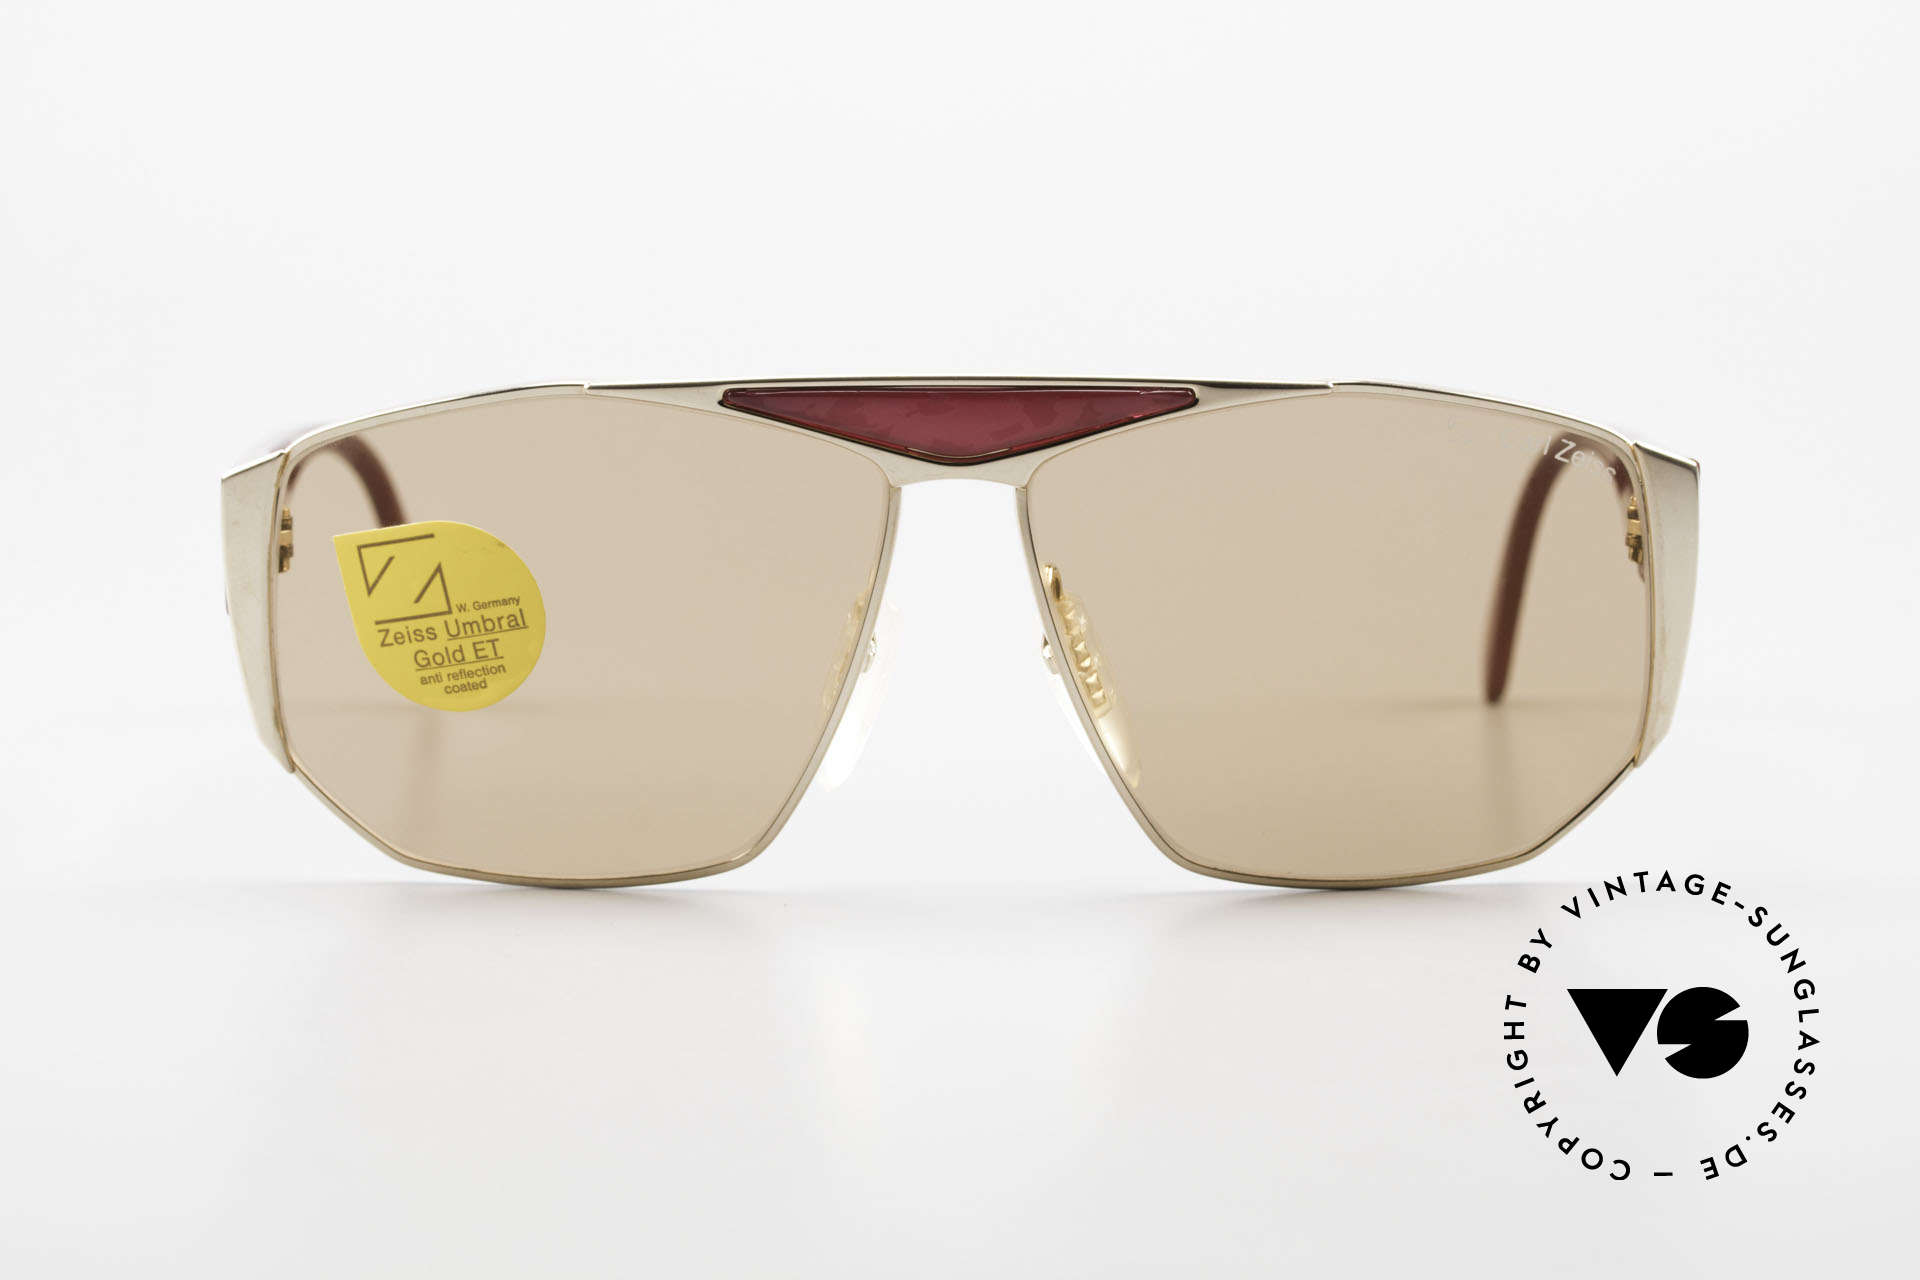 Zeiss 9302 Old 80's West Germany Shades, with high-end Zeiss Umbral mineral lenses (100% UV), Made for Men